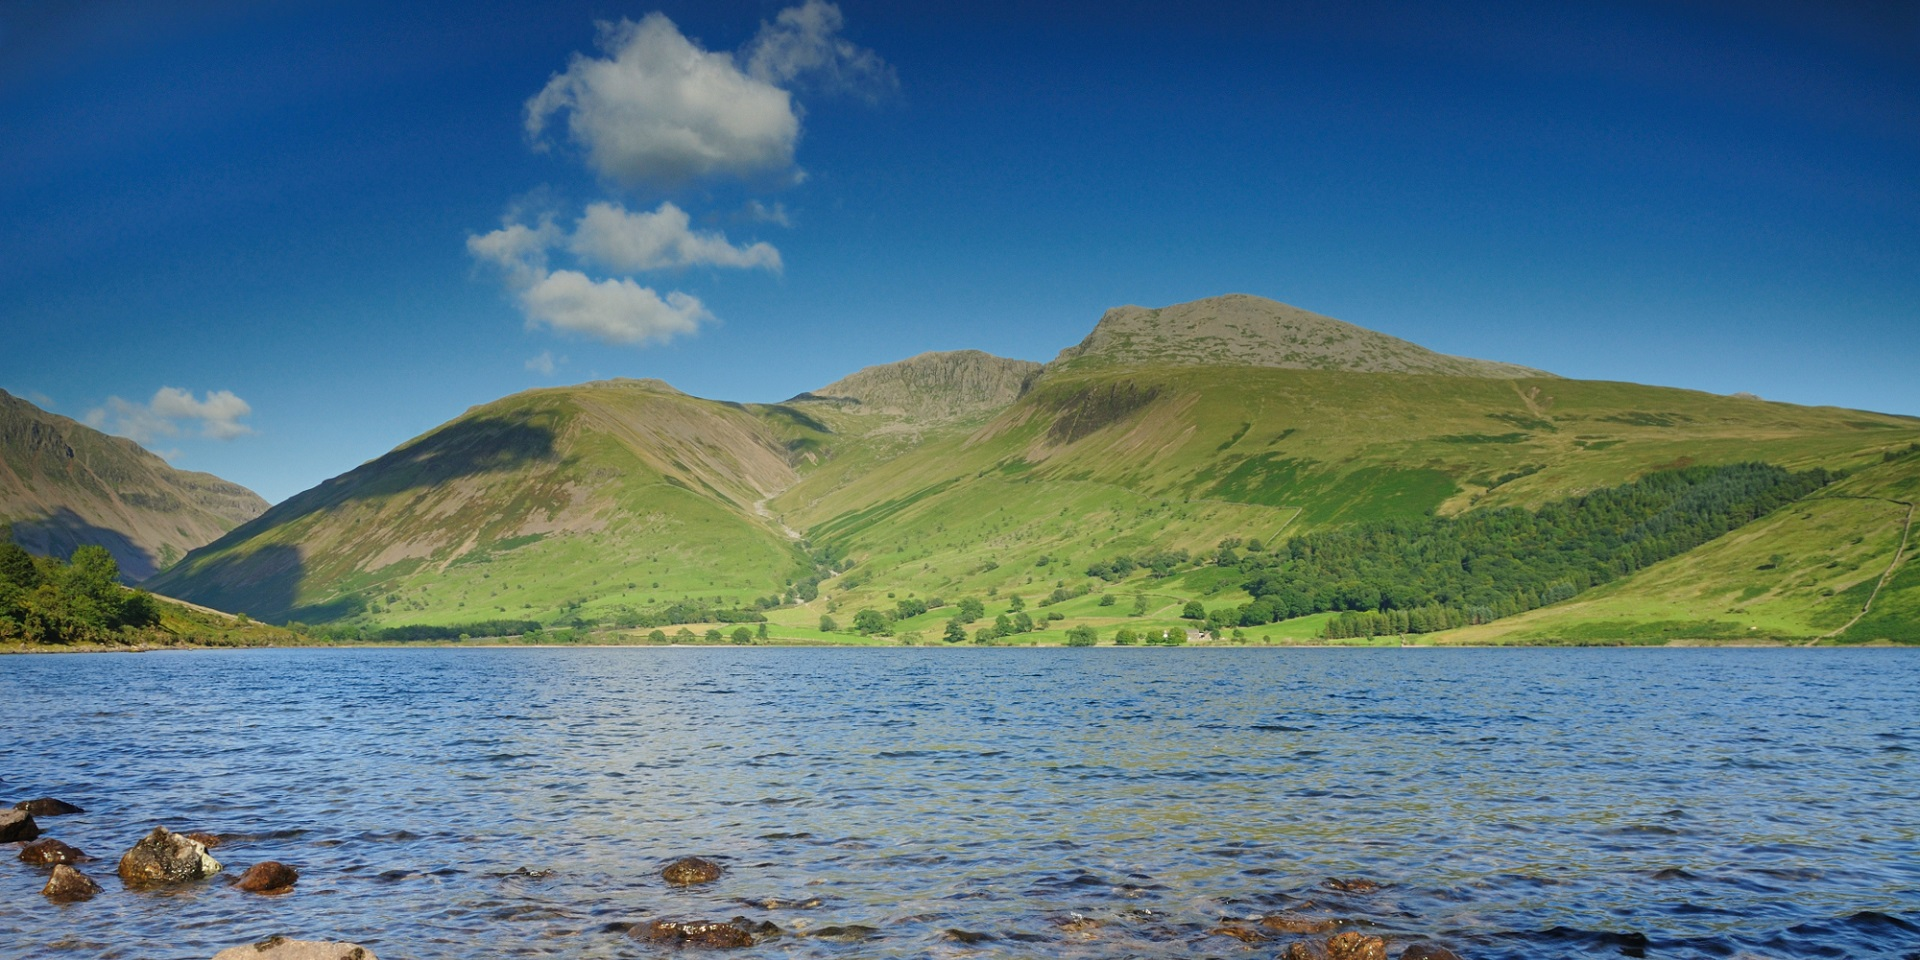 Lake district mountain weather forecast met office - Met office mountain forecast ...